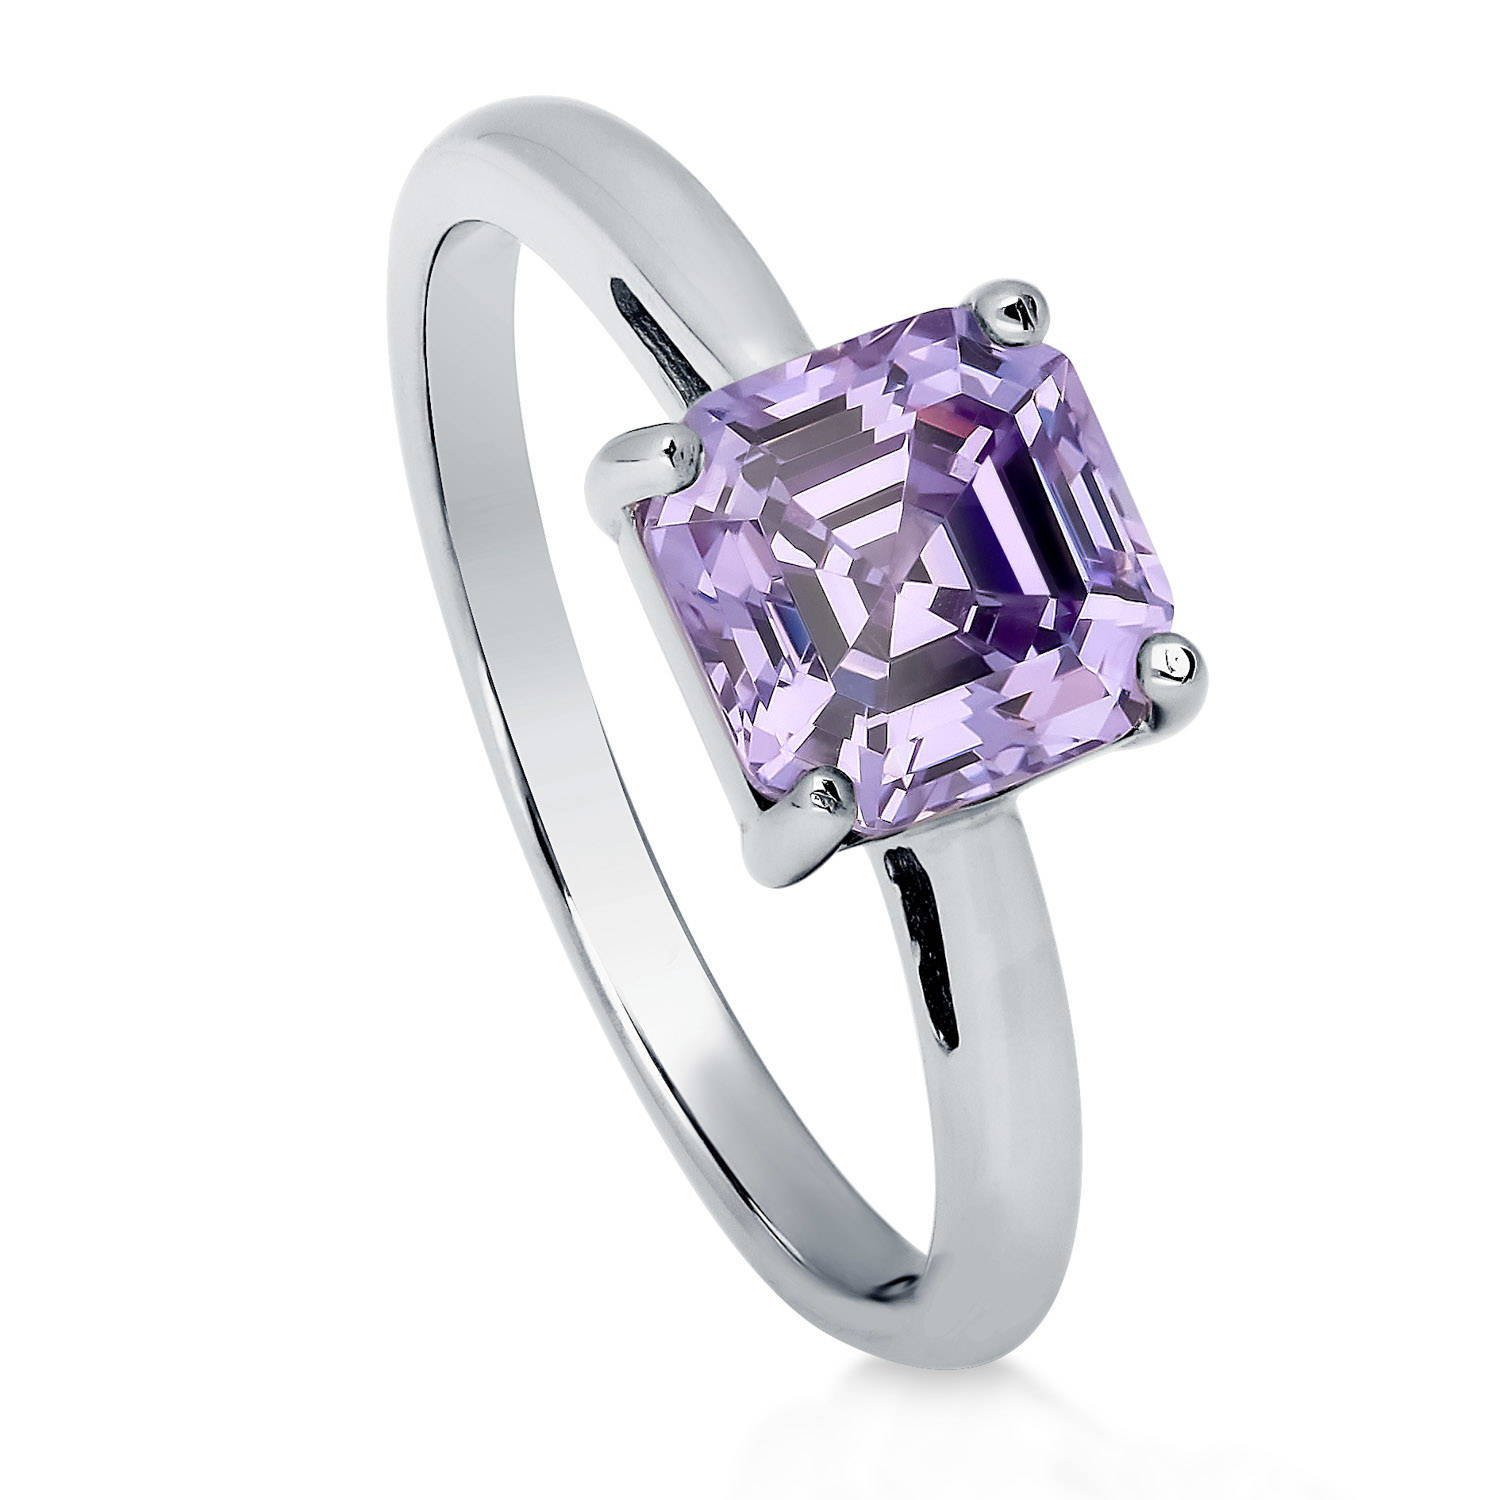 BERRICLE Rhodium Plated Sterling Silver Cubic Zirconia CZ Solitaire Engagement Ring Size 7